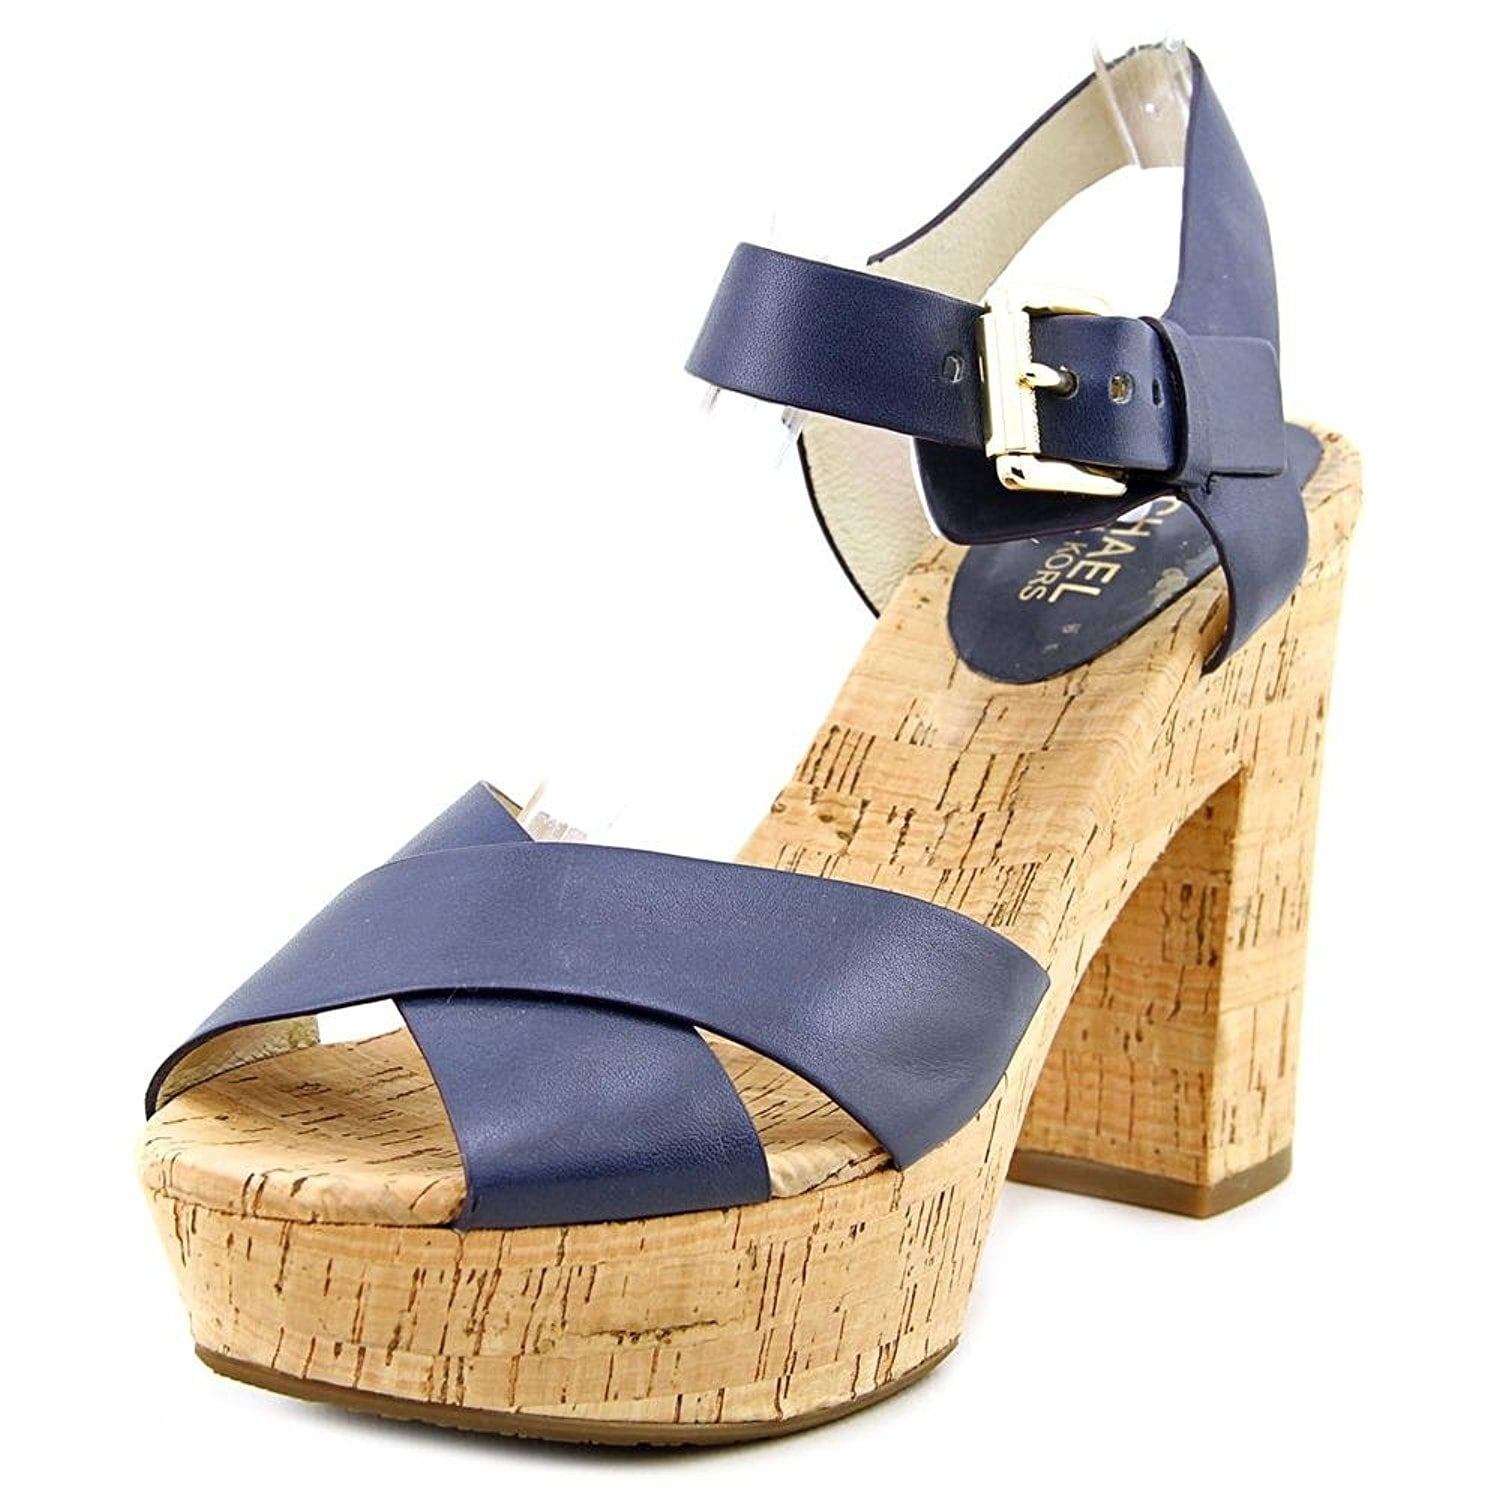 80c2269ca126 Shop MICHAEL Michael Kors Womens NATALIA PLATFORM Leather Open Toe Casual -  Free Shipping Today - Overstock - 14538136